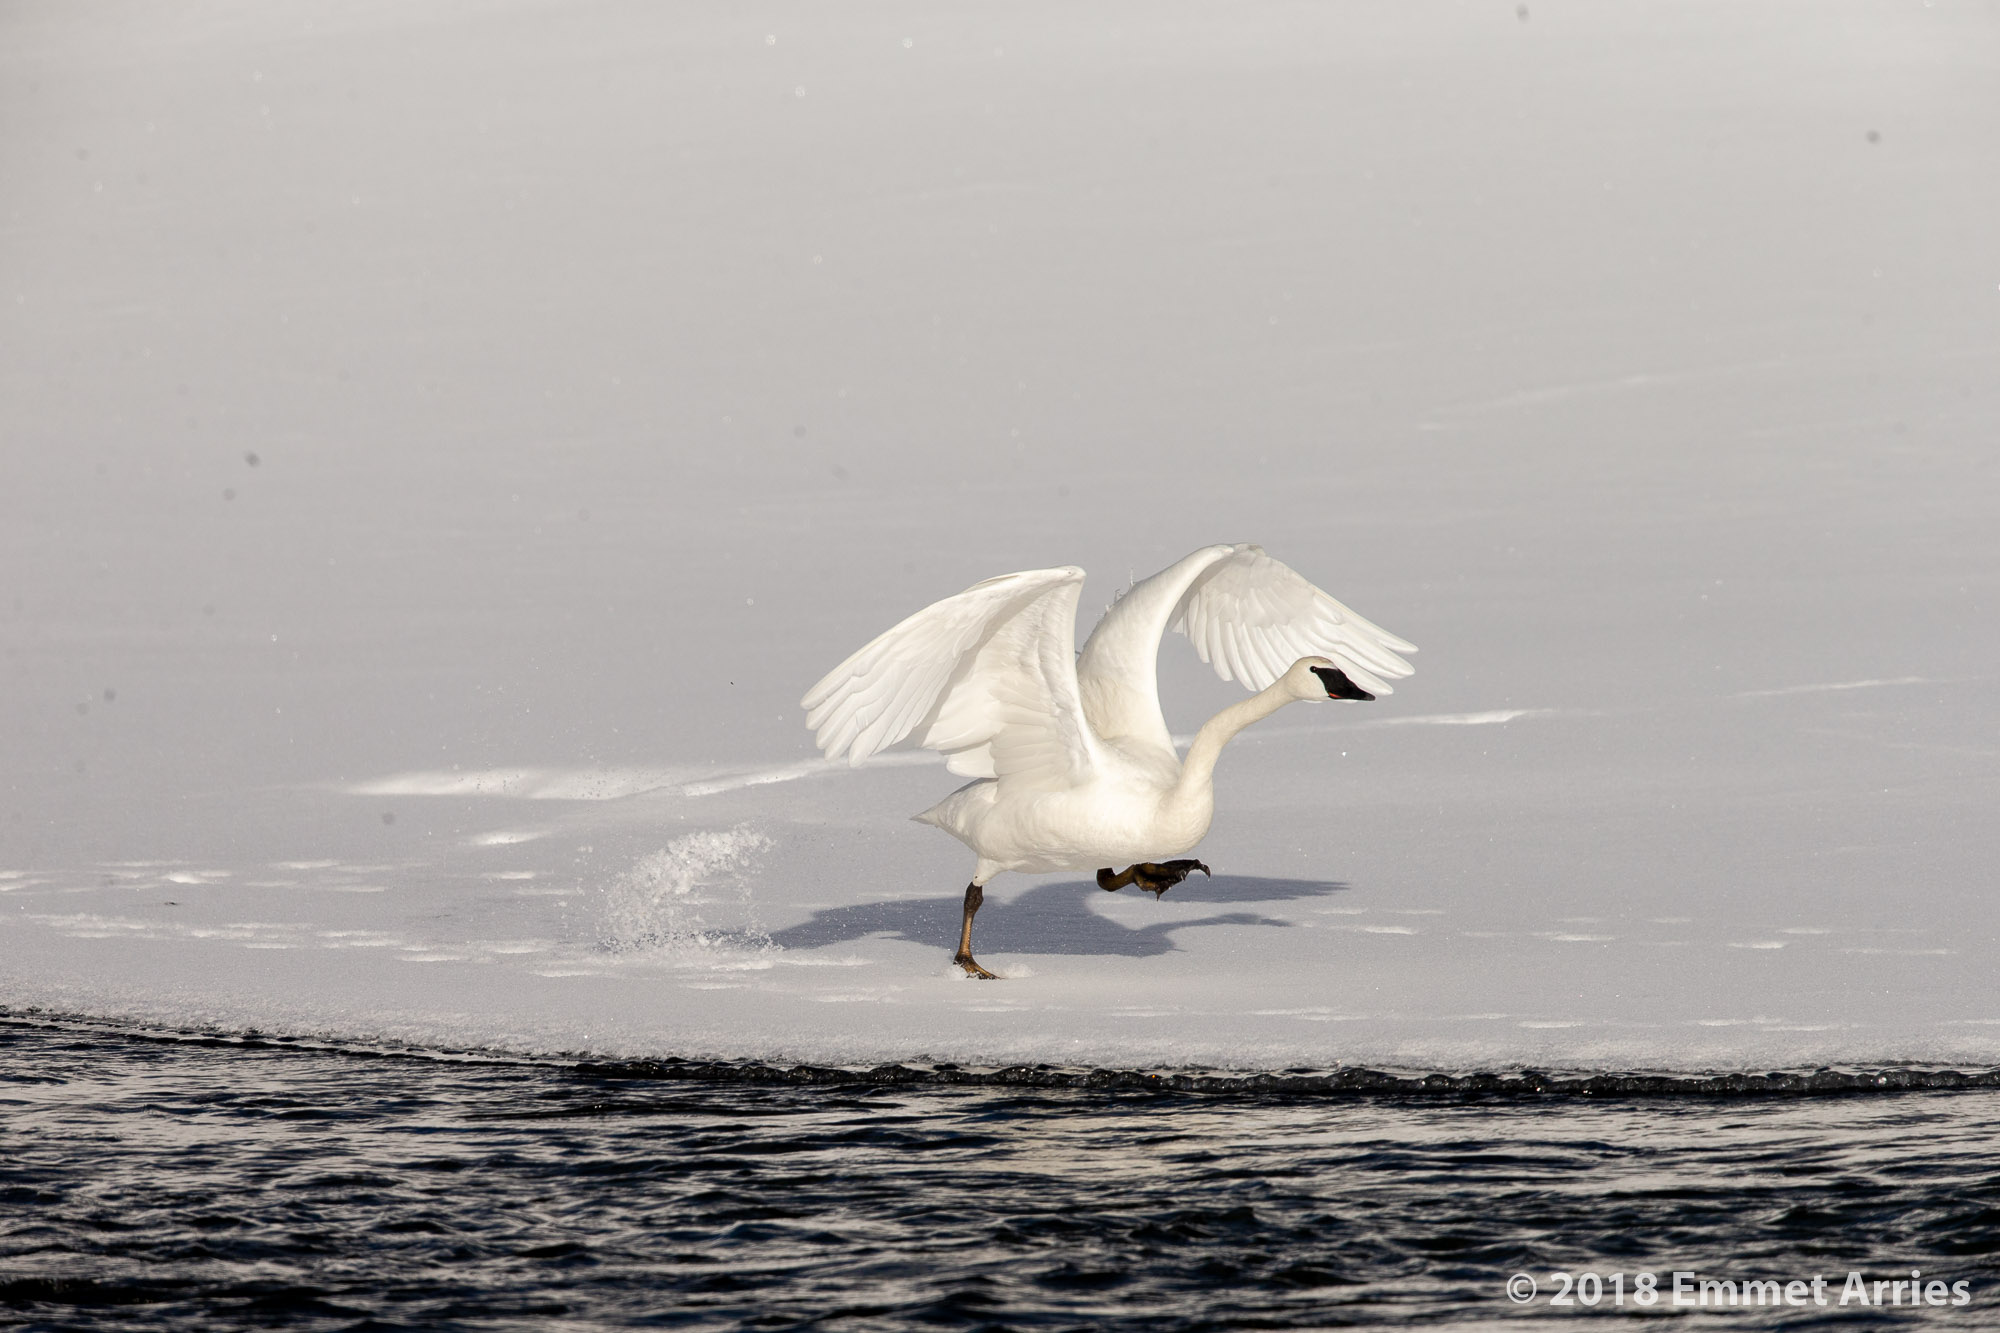 Trumpeter Swans spend a lot of time not flying. When they do fly, it makes all the waiting worth it.